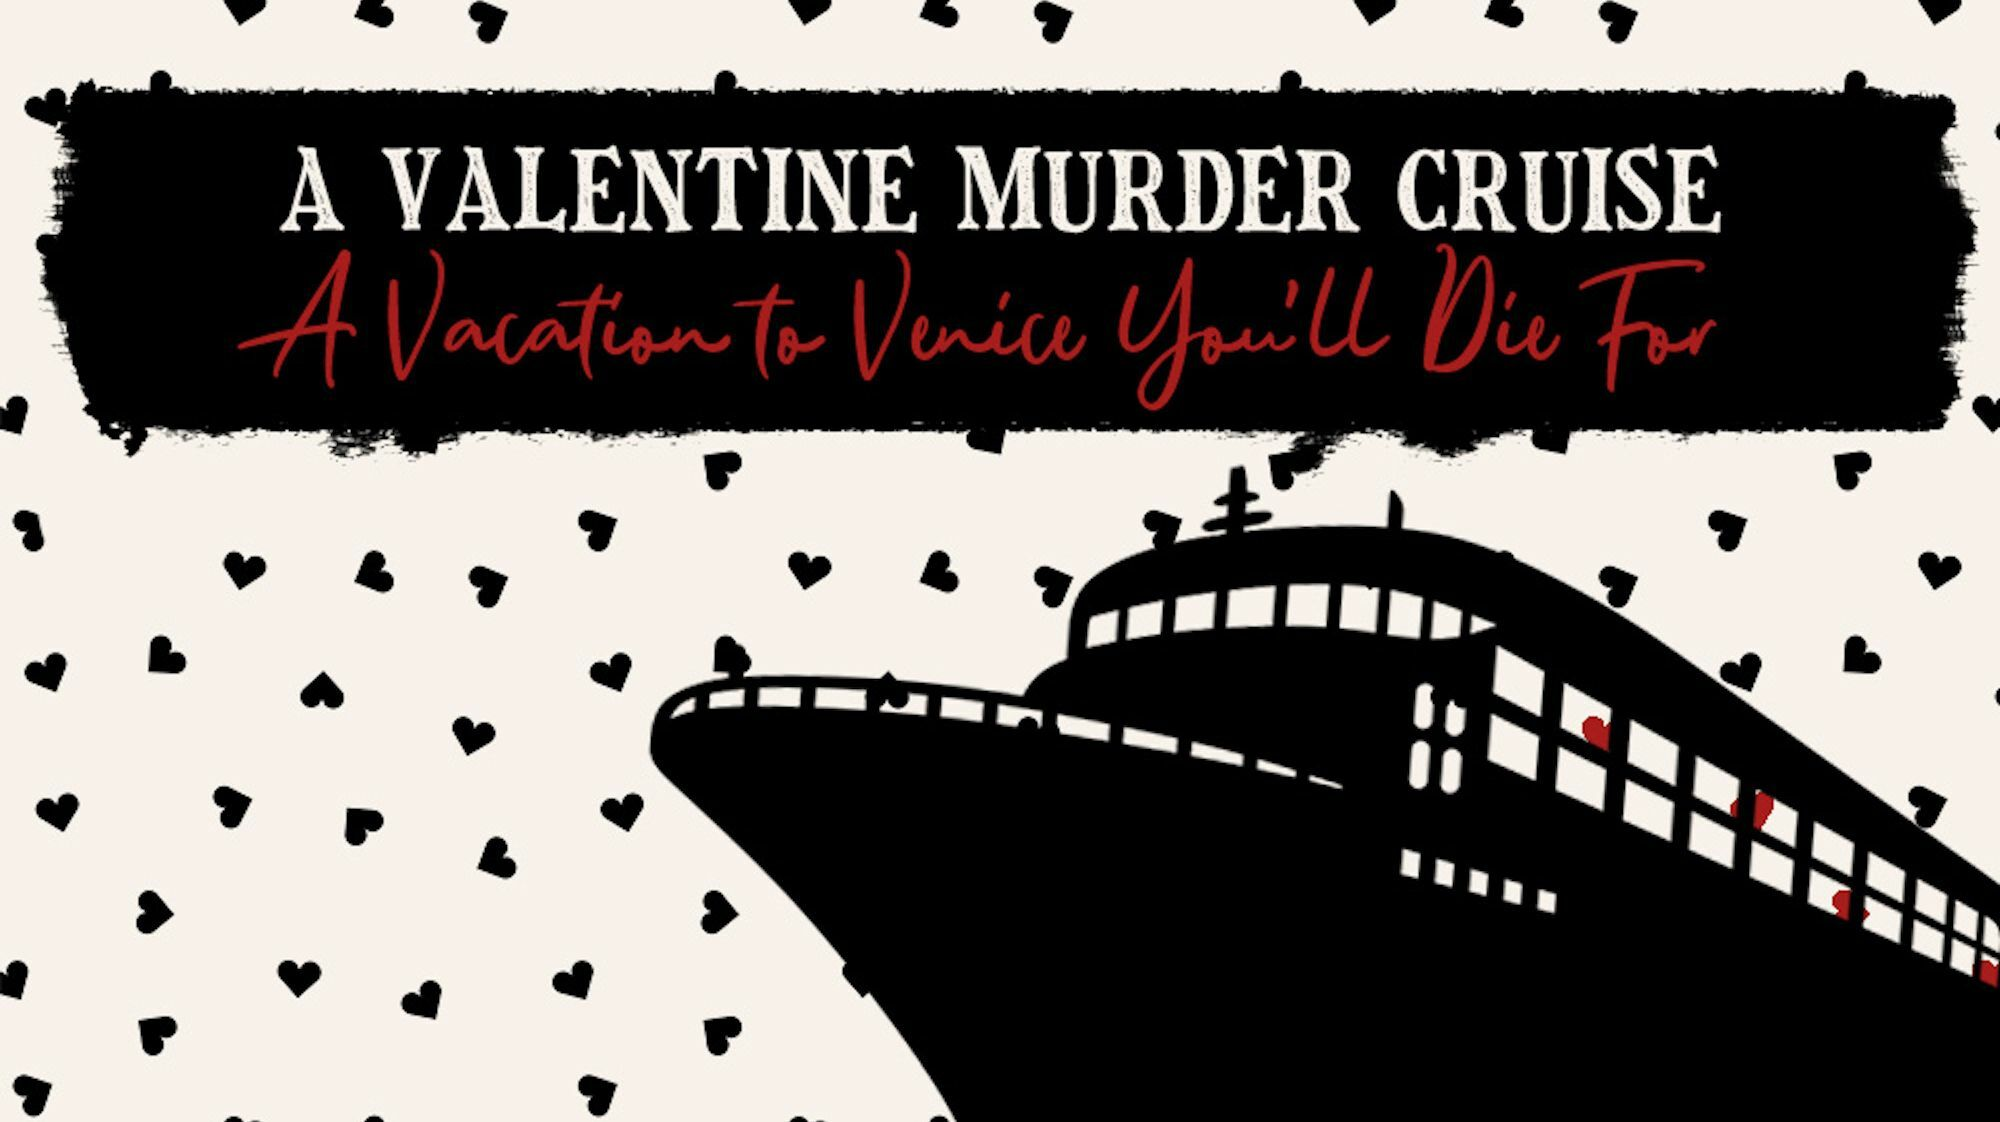 """""""A Valentine Murder Cruise"""" - A Vacation to Venice You'll Die For: A Virtual Murder Mystery Party Game"""